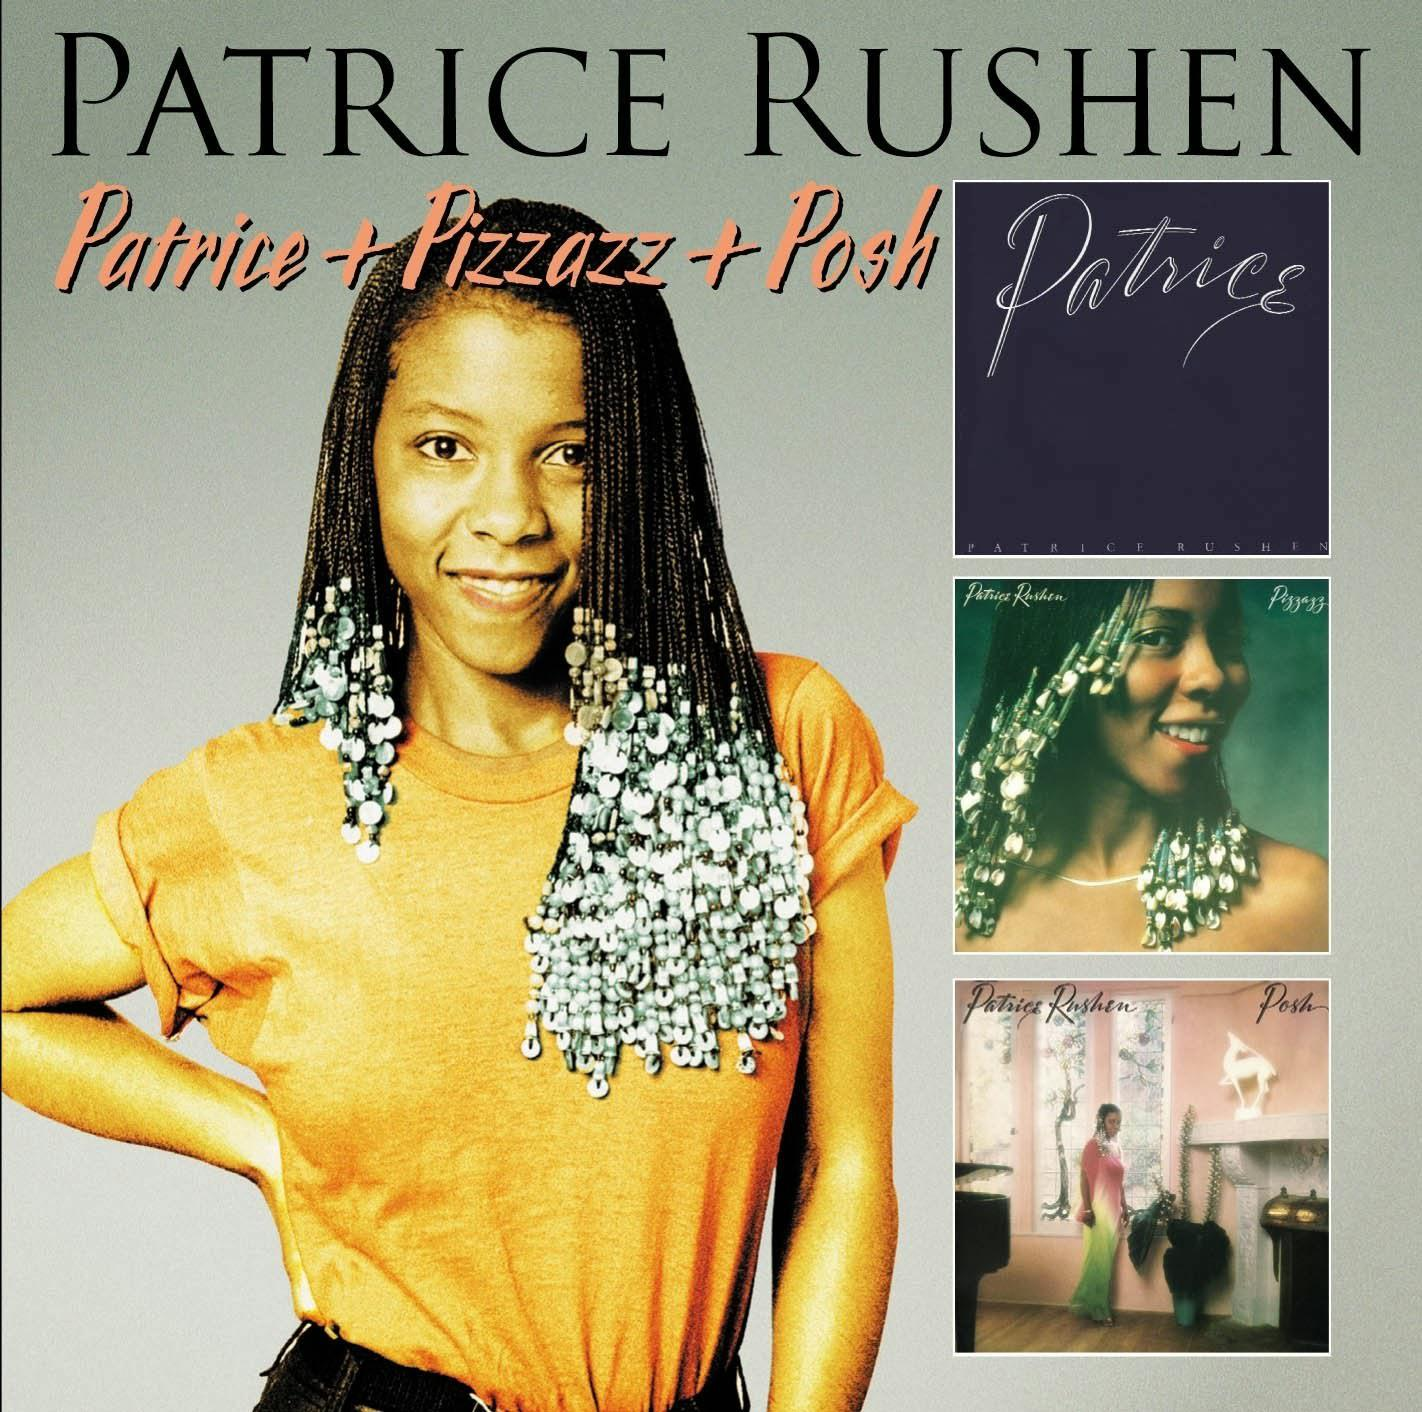 Patrice Rushen - Patrice and Pizzazz and Posh [MULTI]